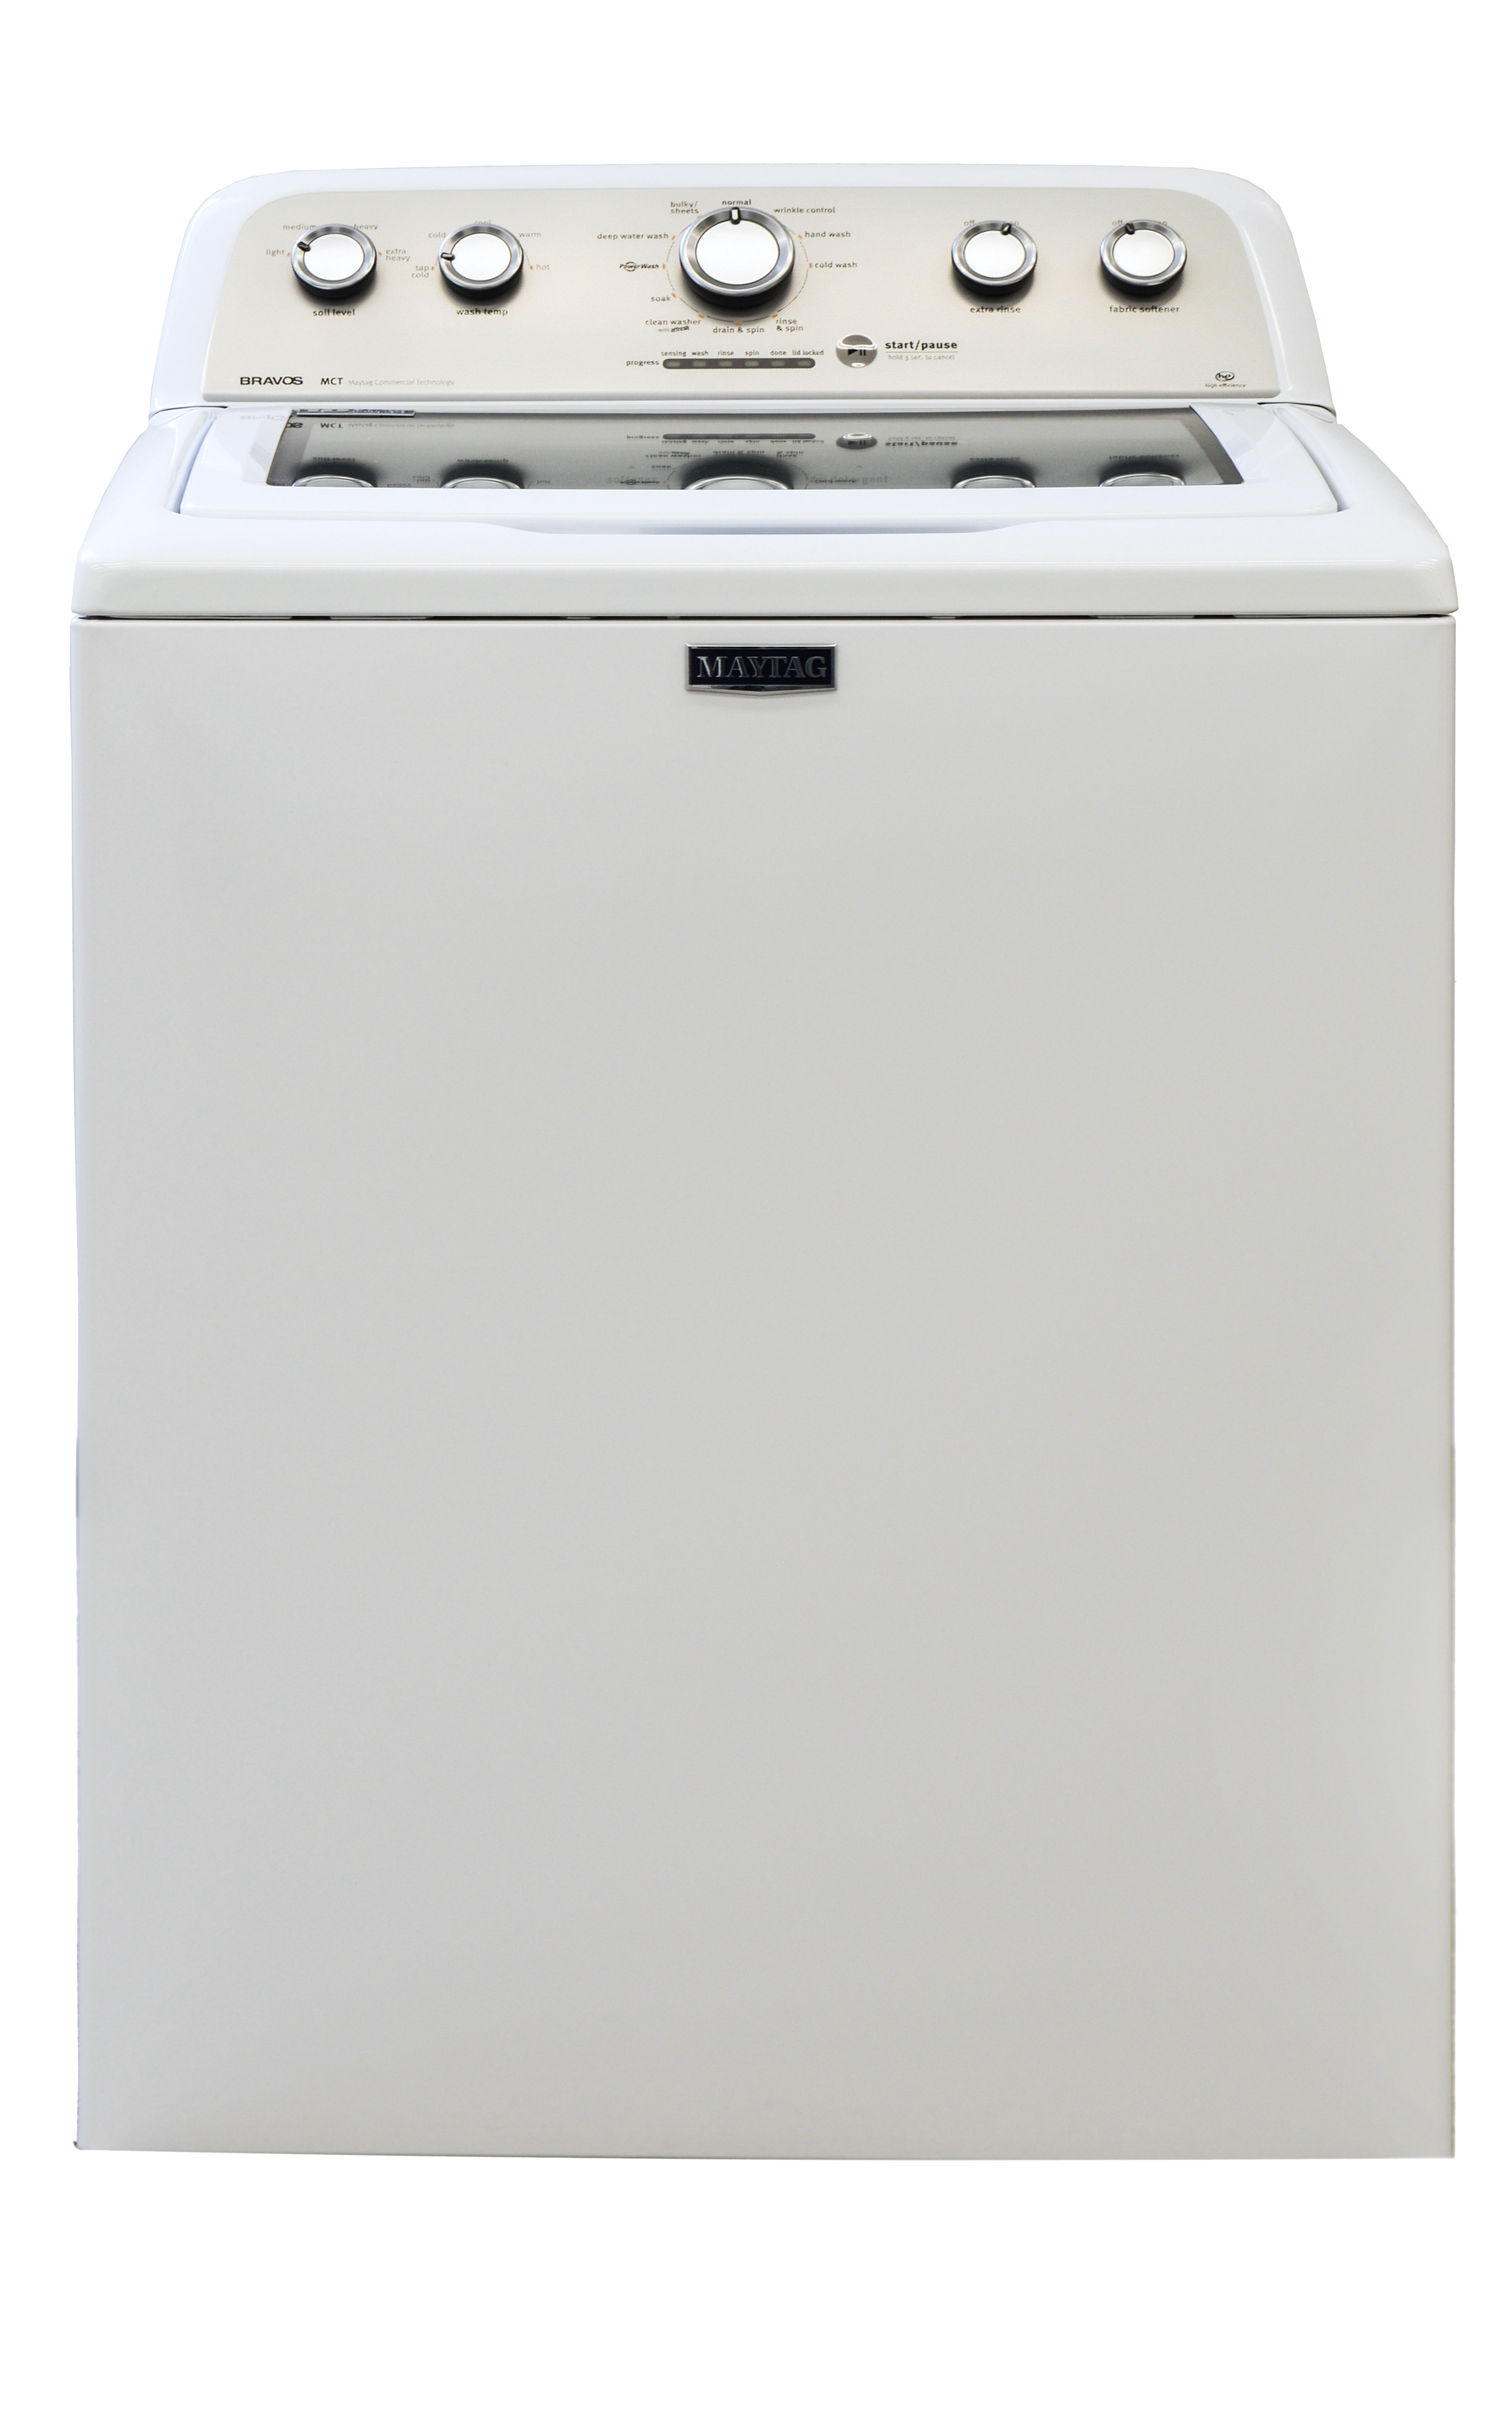 Maytag Washing Machine ~ Maytag bravos mvwx dw washing machine review reviewed